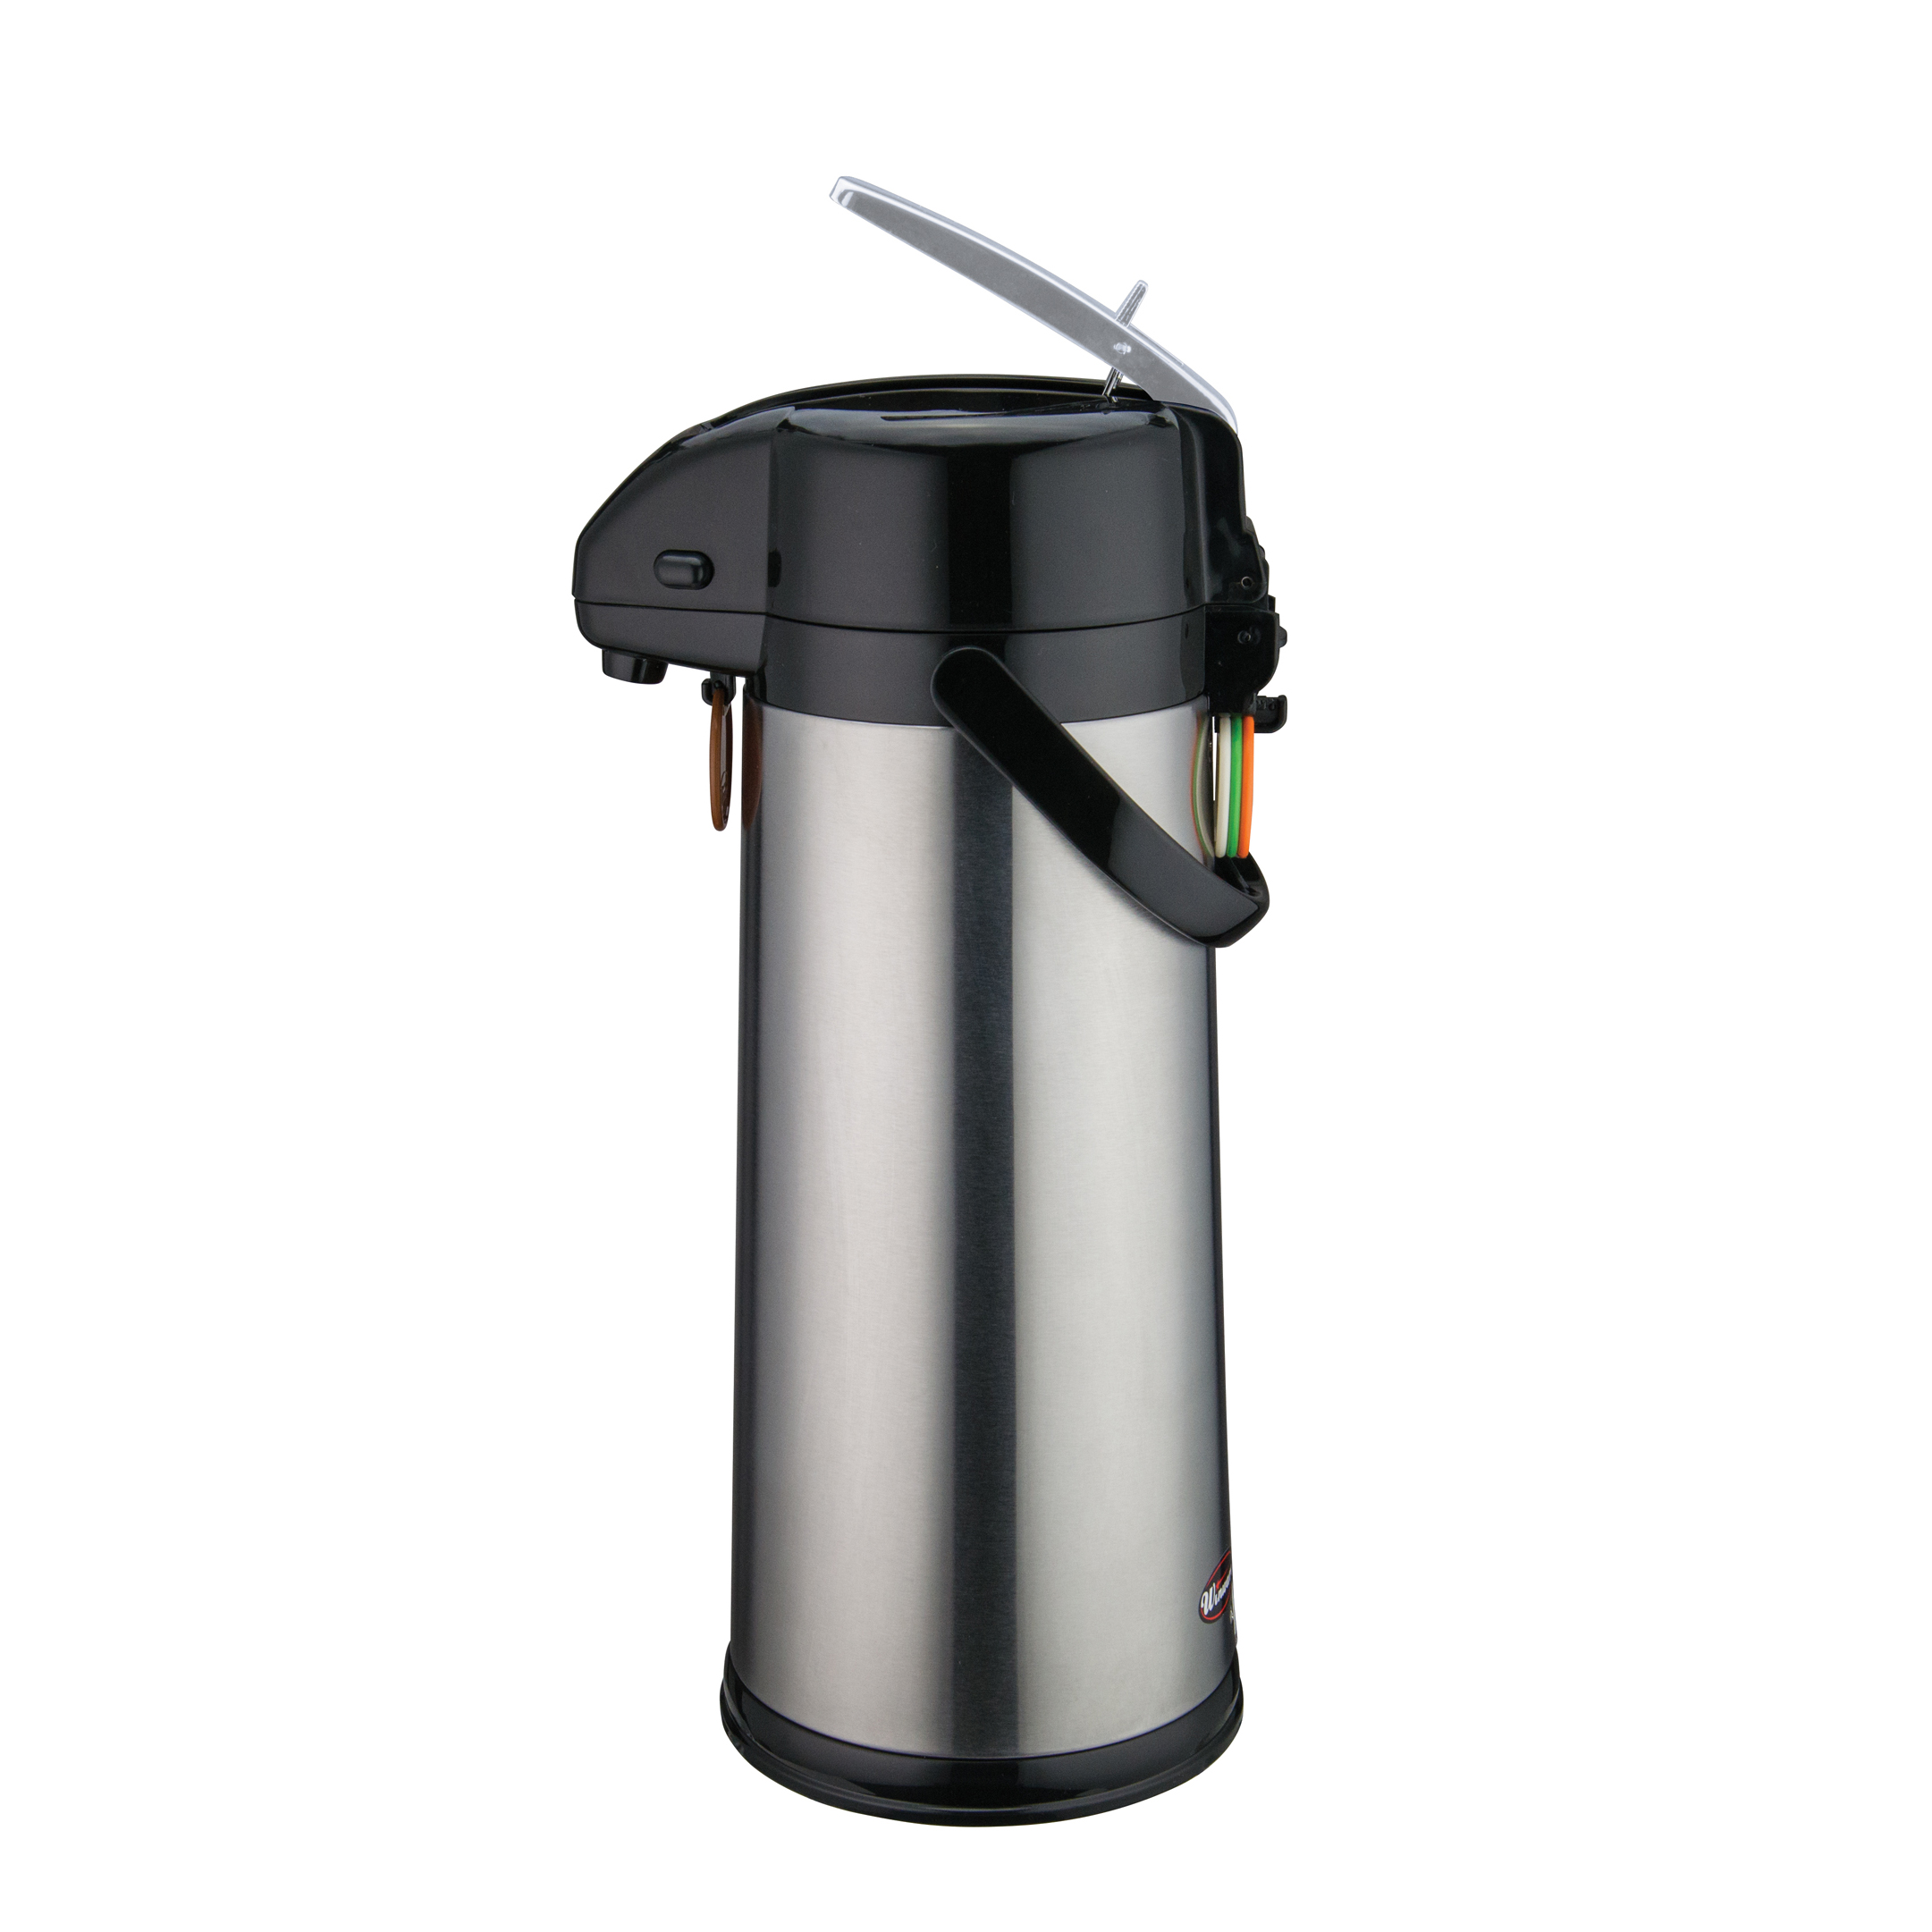 Winco AP-835 airpot